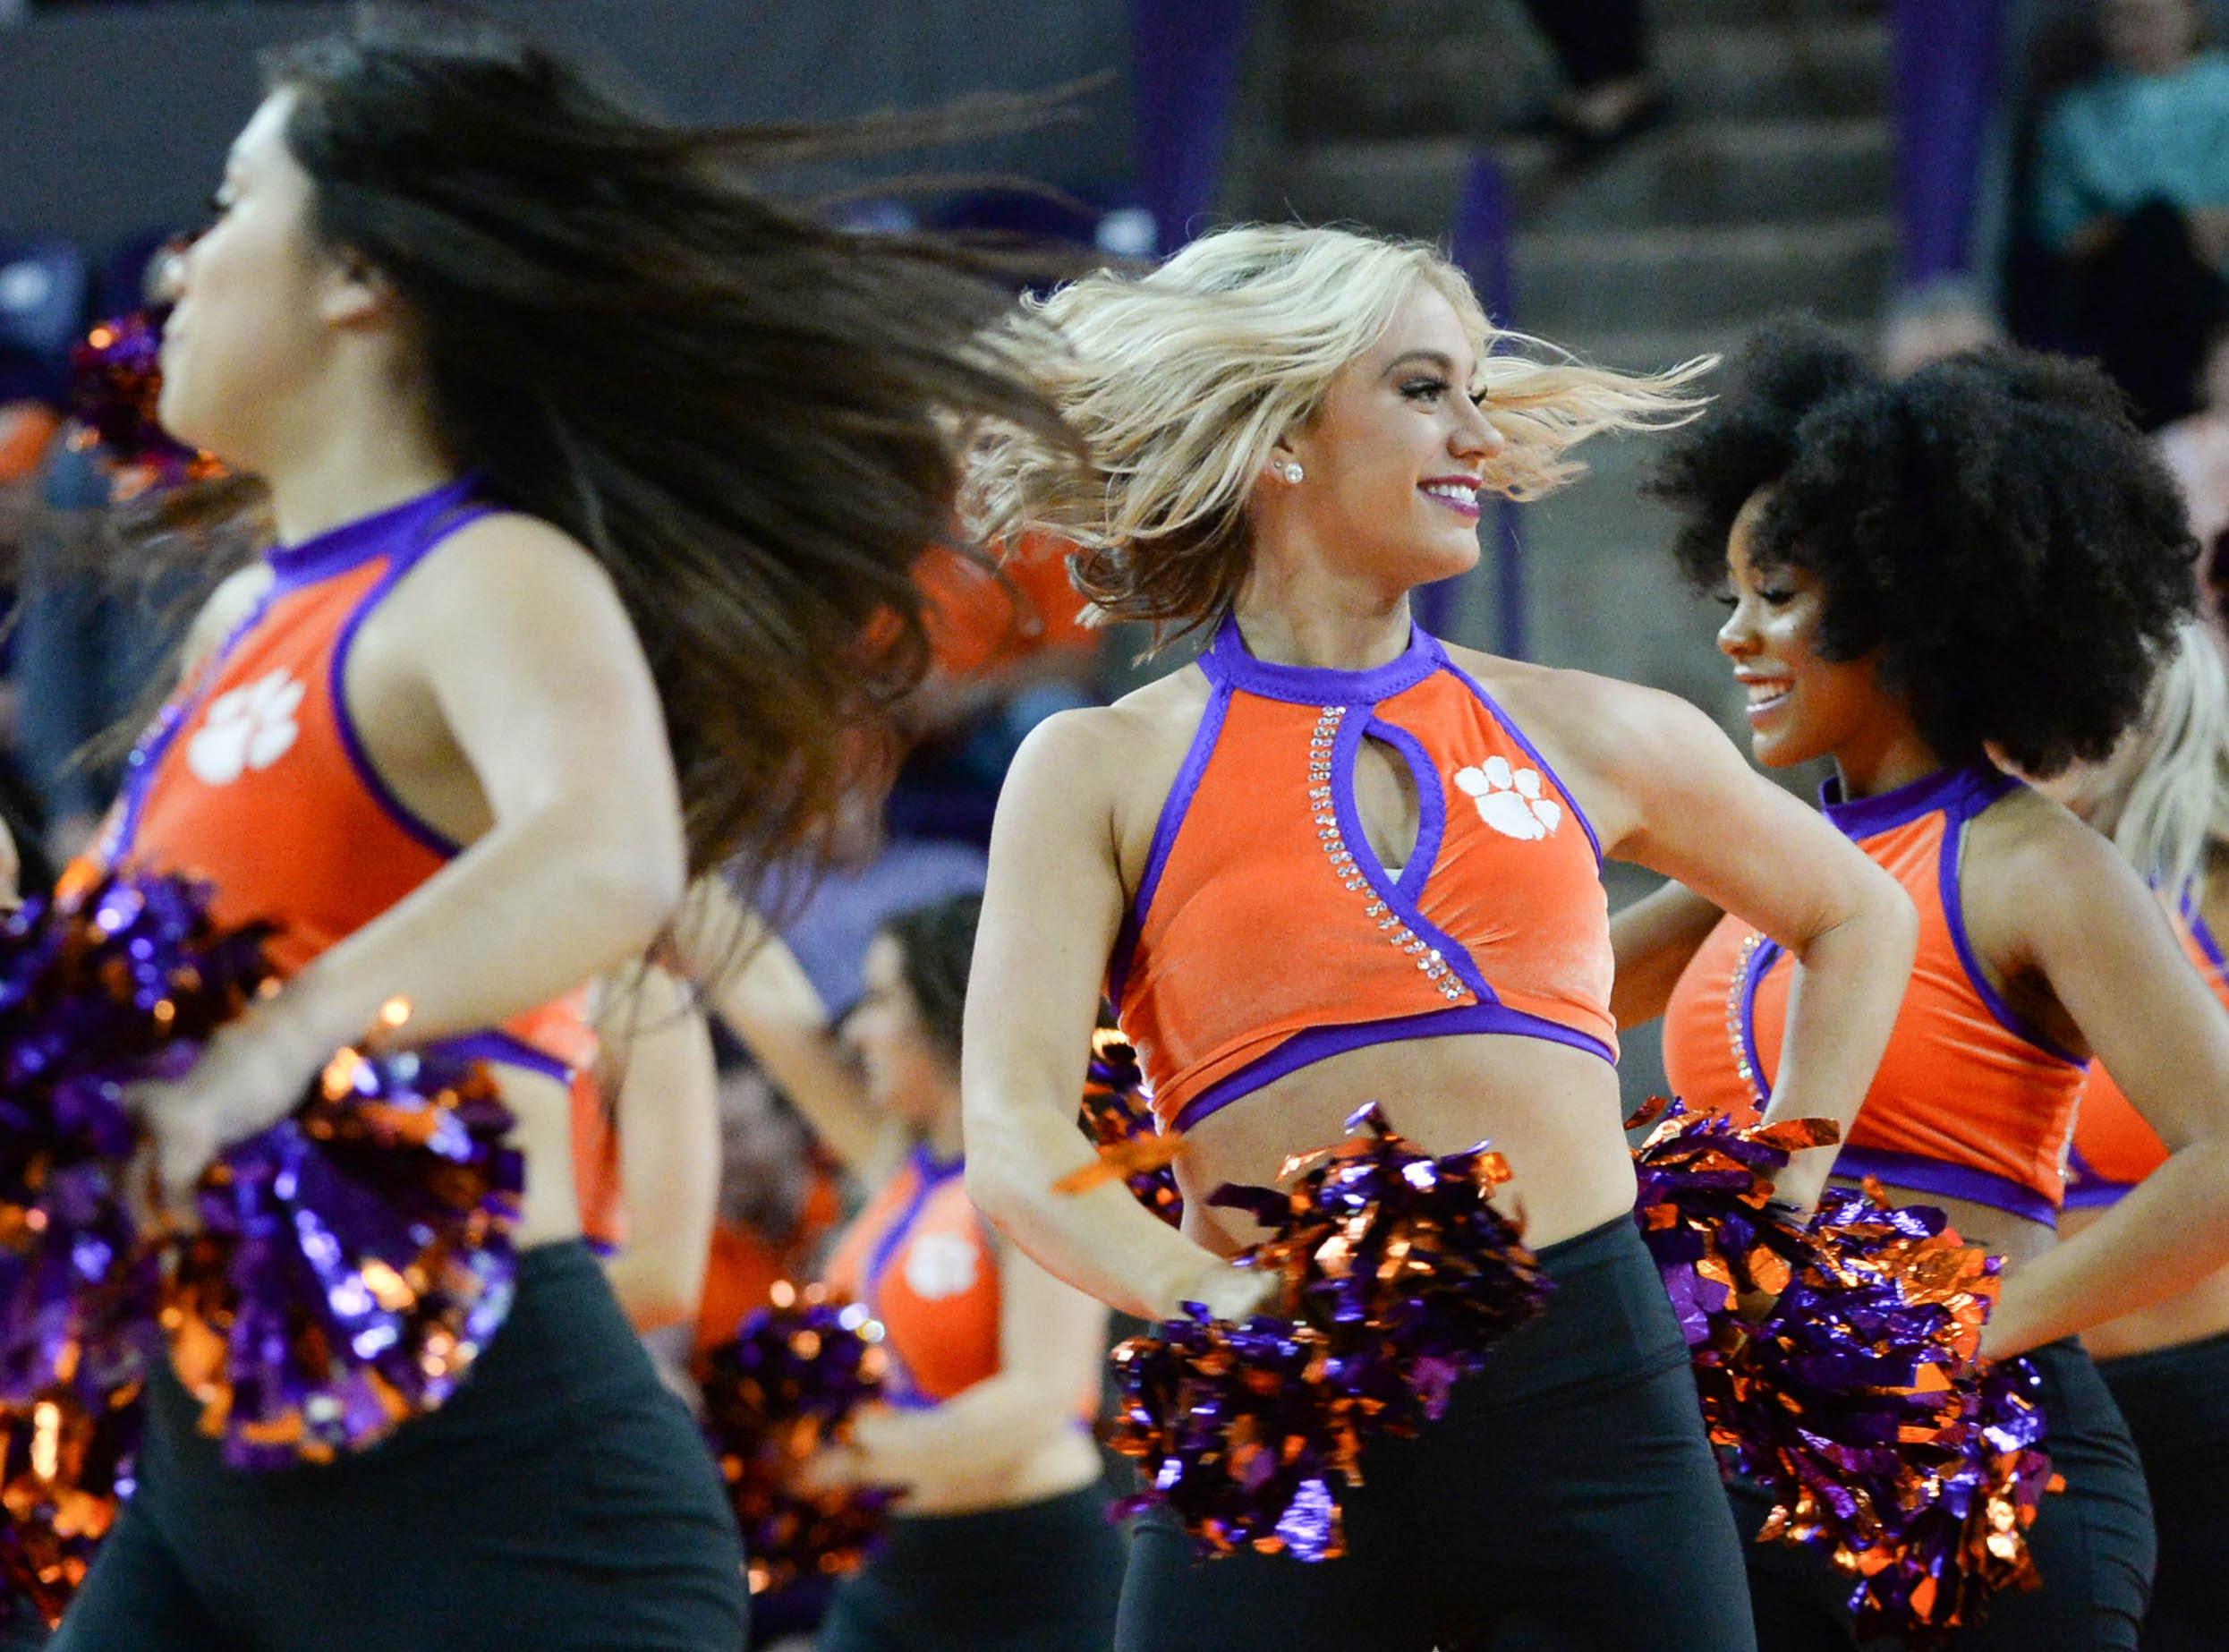 Clemson Rally Cats dance before the game against Syracuse Saturday, March 9, 2019.